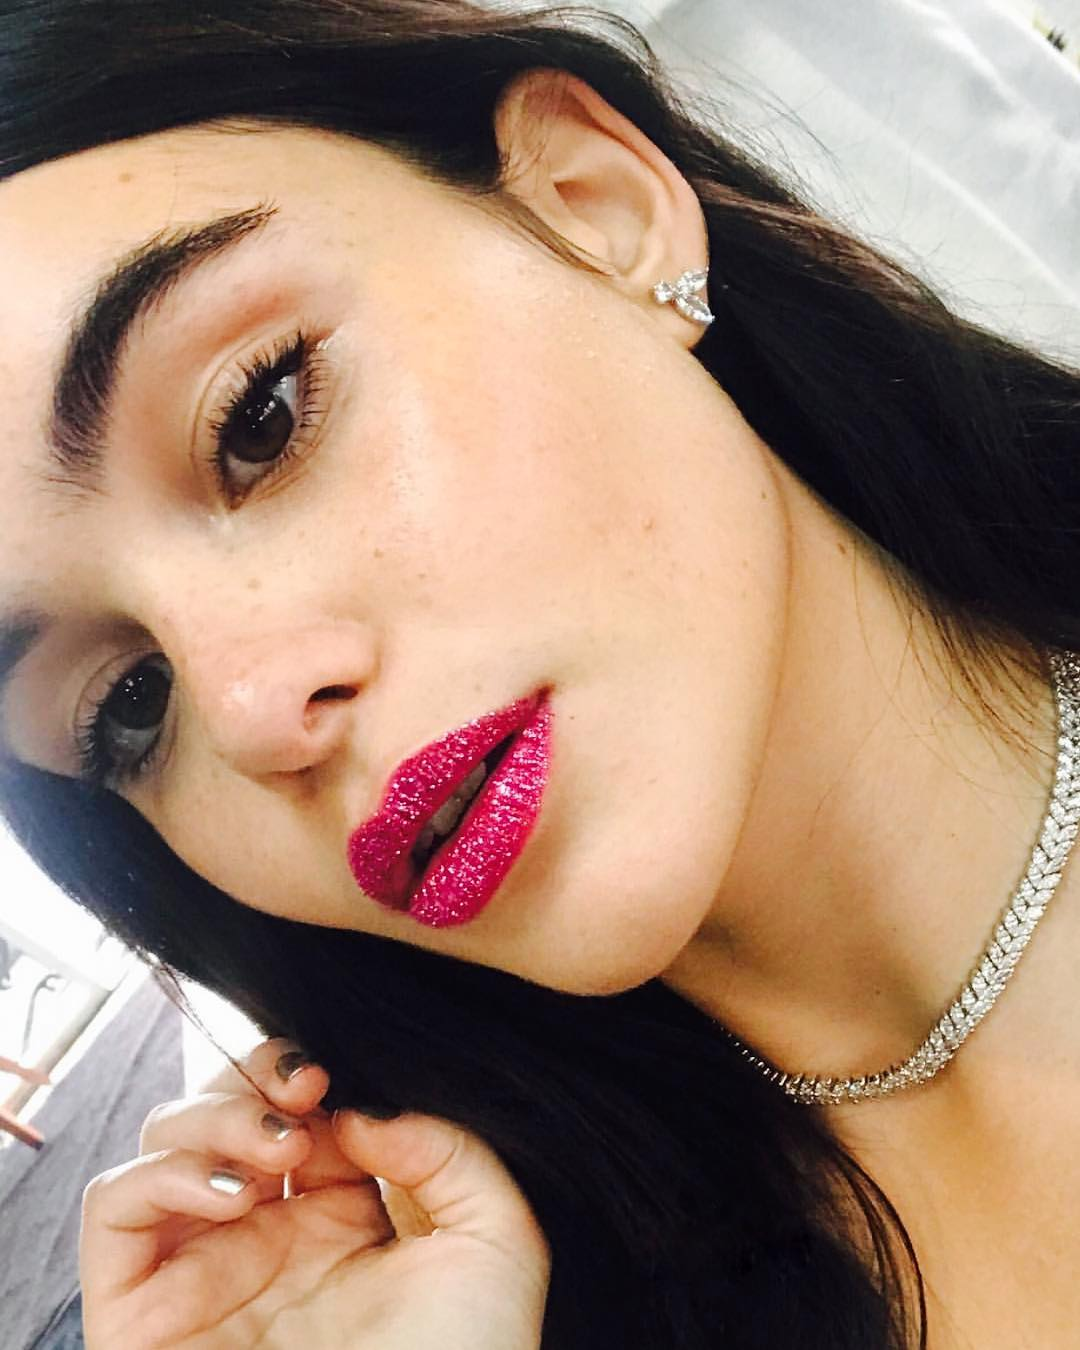 Prom Beauty: DIY Glitter Lips with step-by-step tips from makeup artist Kali Kennedy